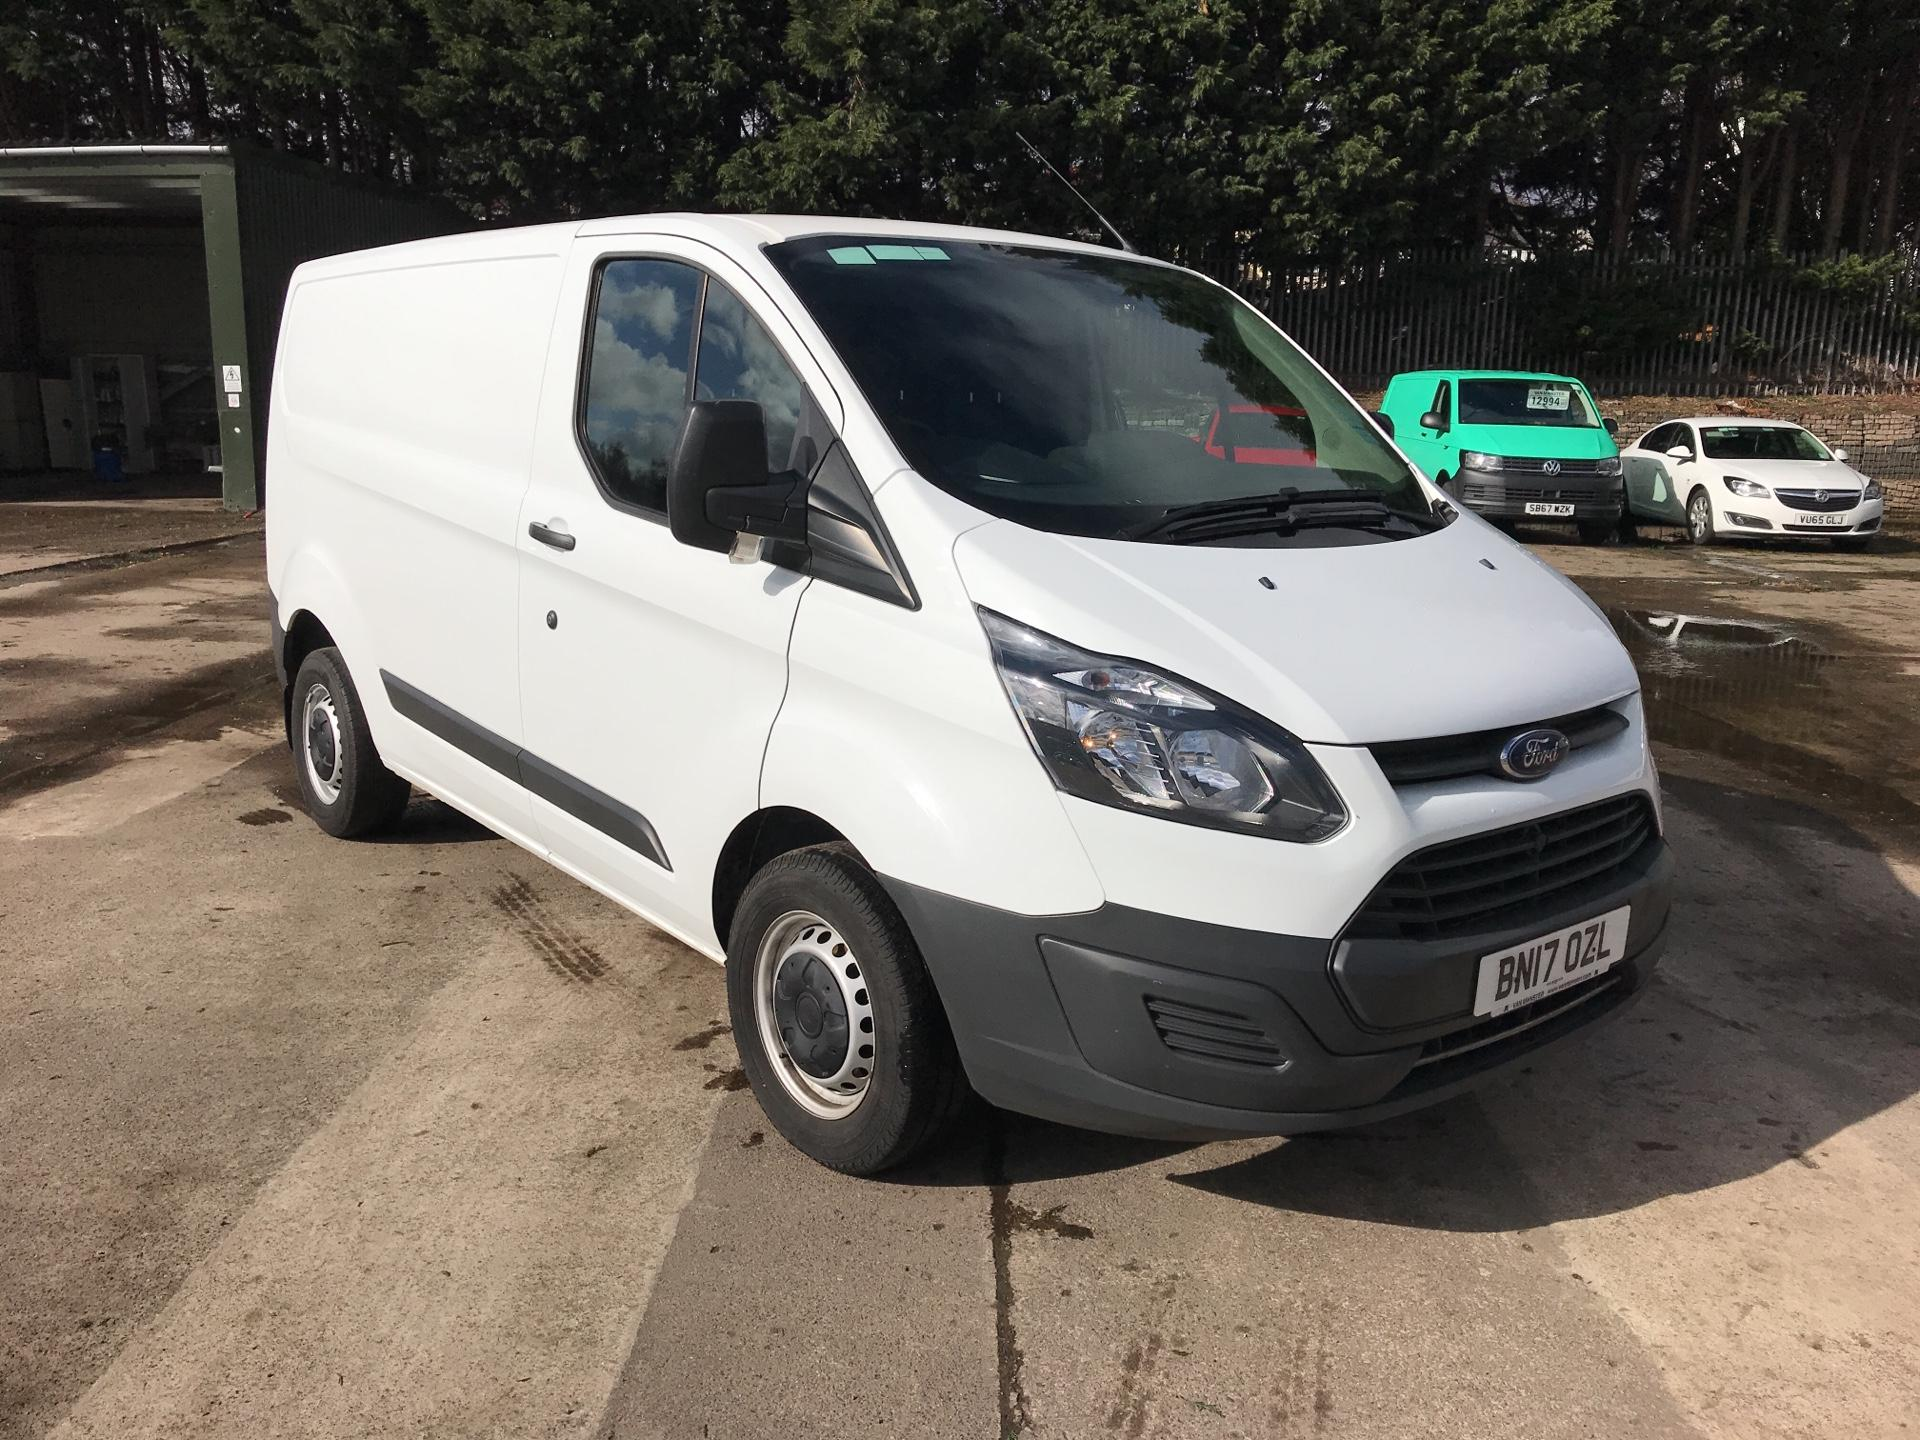 2017 Ford Transit Custom 290 L1 DIESEL FWD 2.0 TDCI 105PS LOW ROOF VAN EURO 6 (BN17OZL)